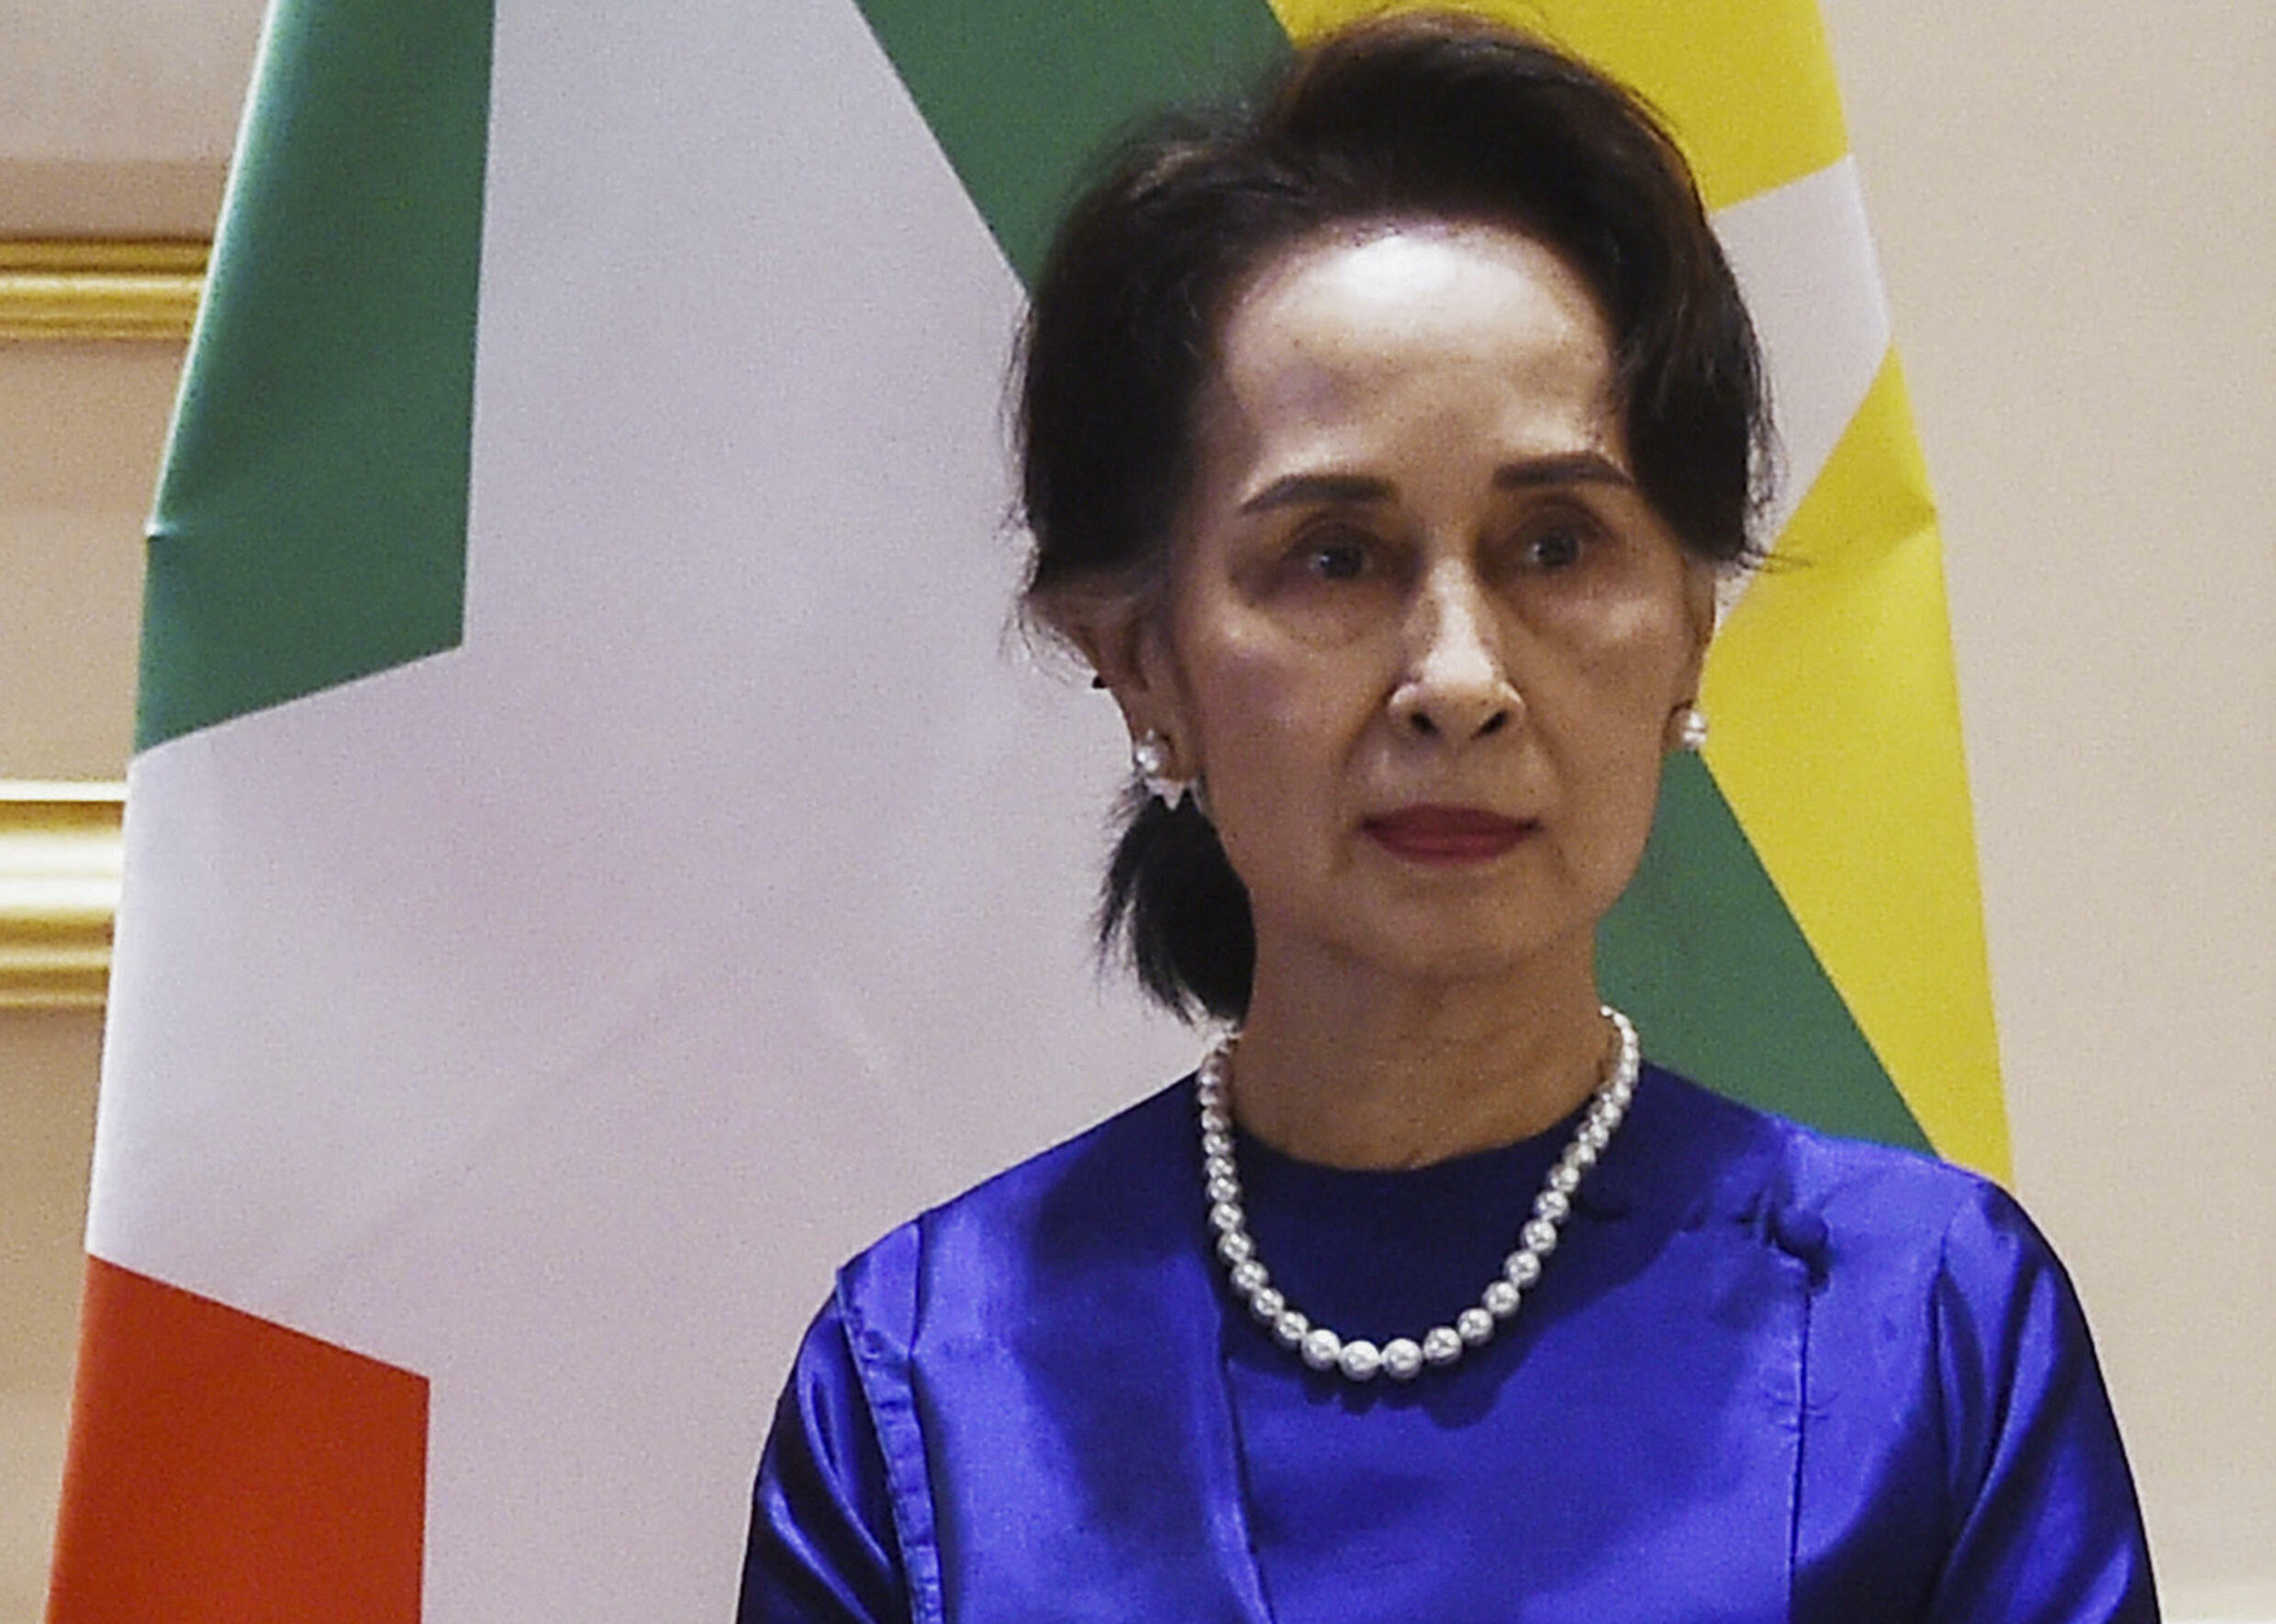 Myanmar  leader Aung San Suu Kyi has been detained since February 1 and faces a string of criminal charges